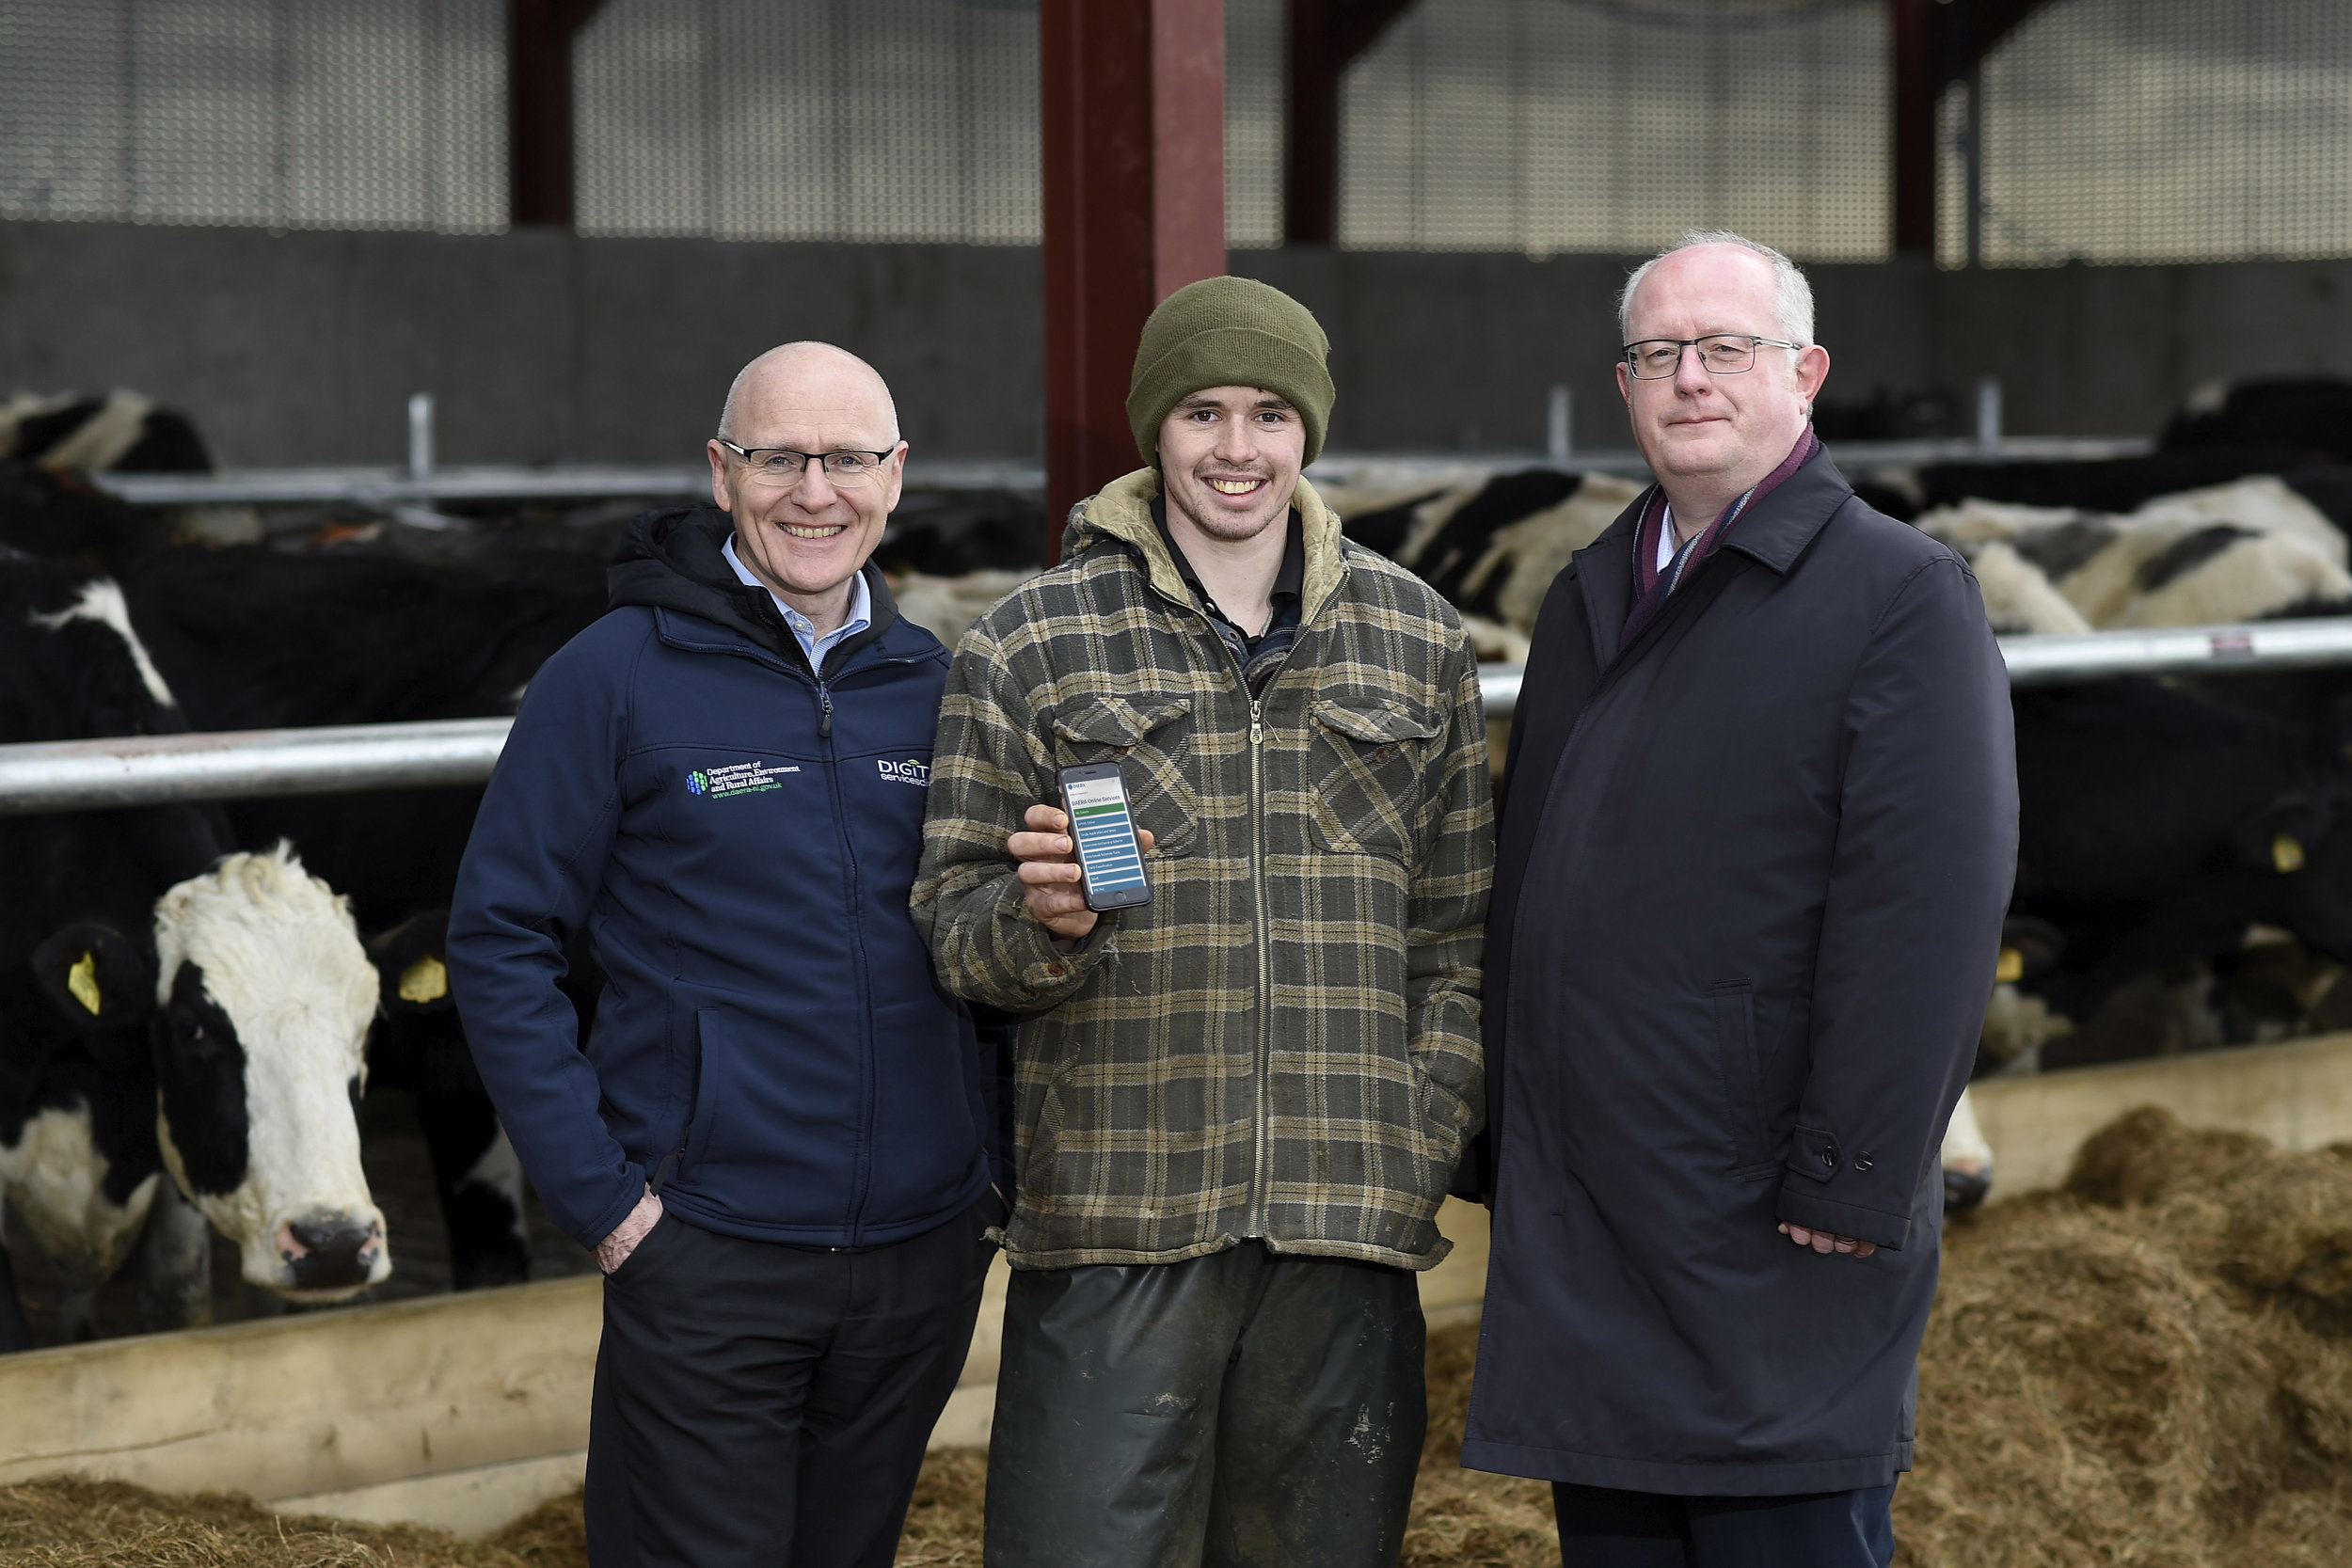 (L-R) Gerry Hackett, Digital Services Division at DAERA with Dale Farm dairy farmer James Lindsay and Neil McKeown, Neueda Head of Consulting.